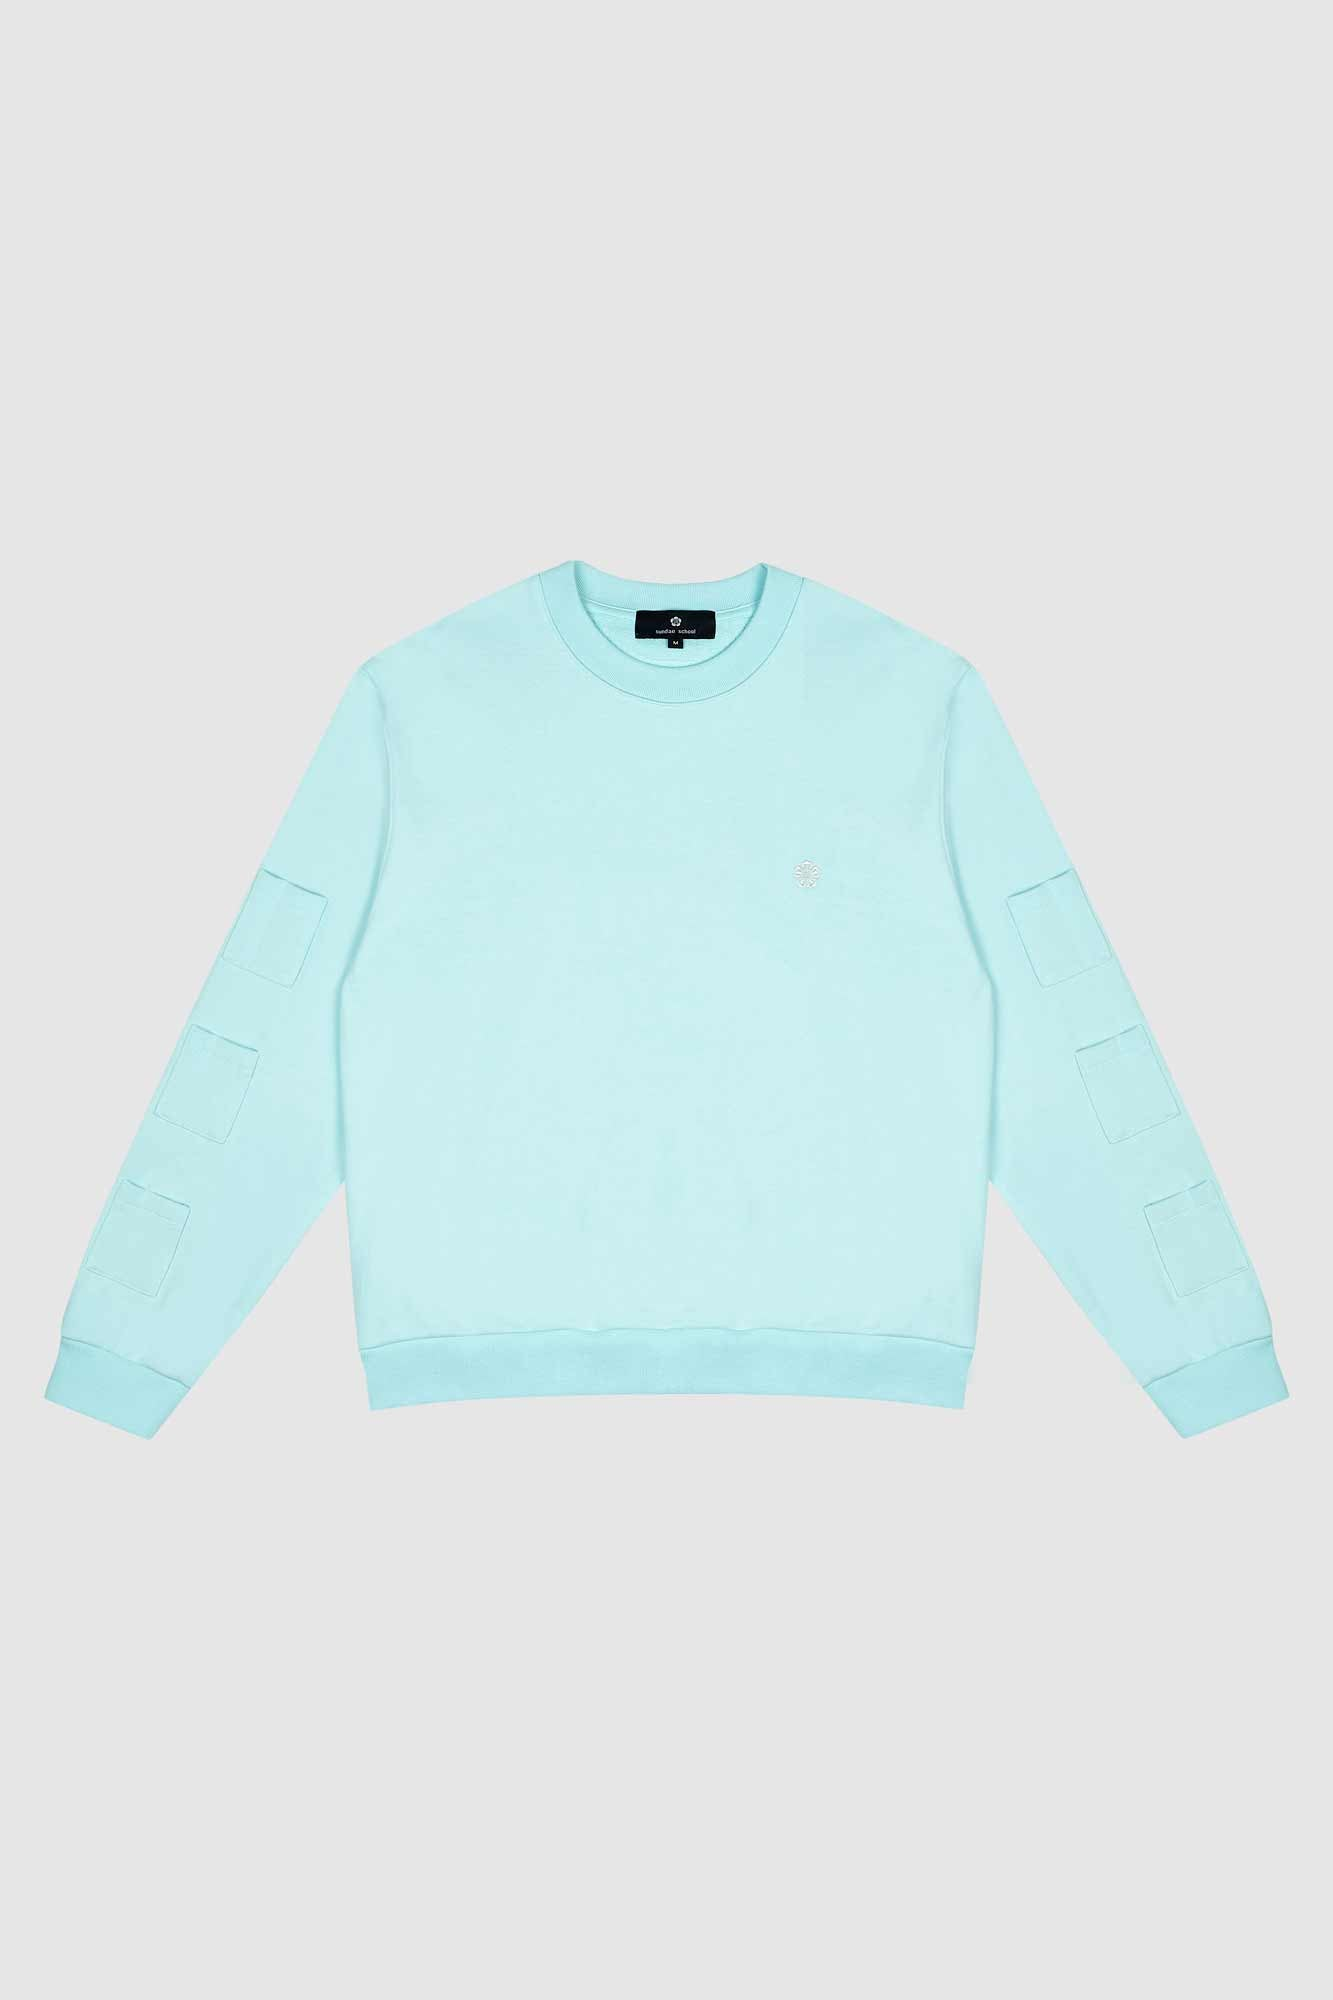 Photo of Beach Blue Uniform Crewneck, number 5